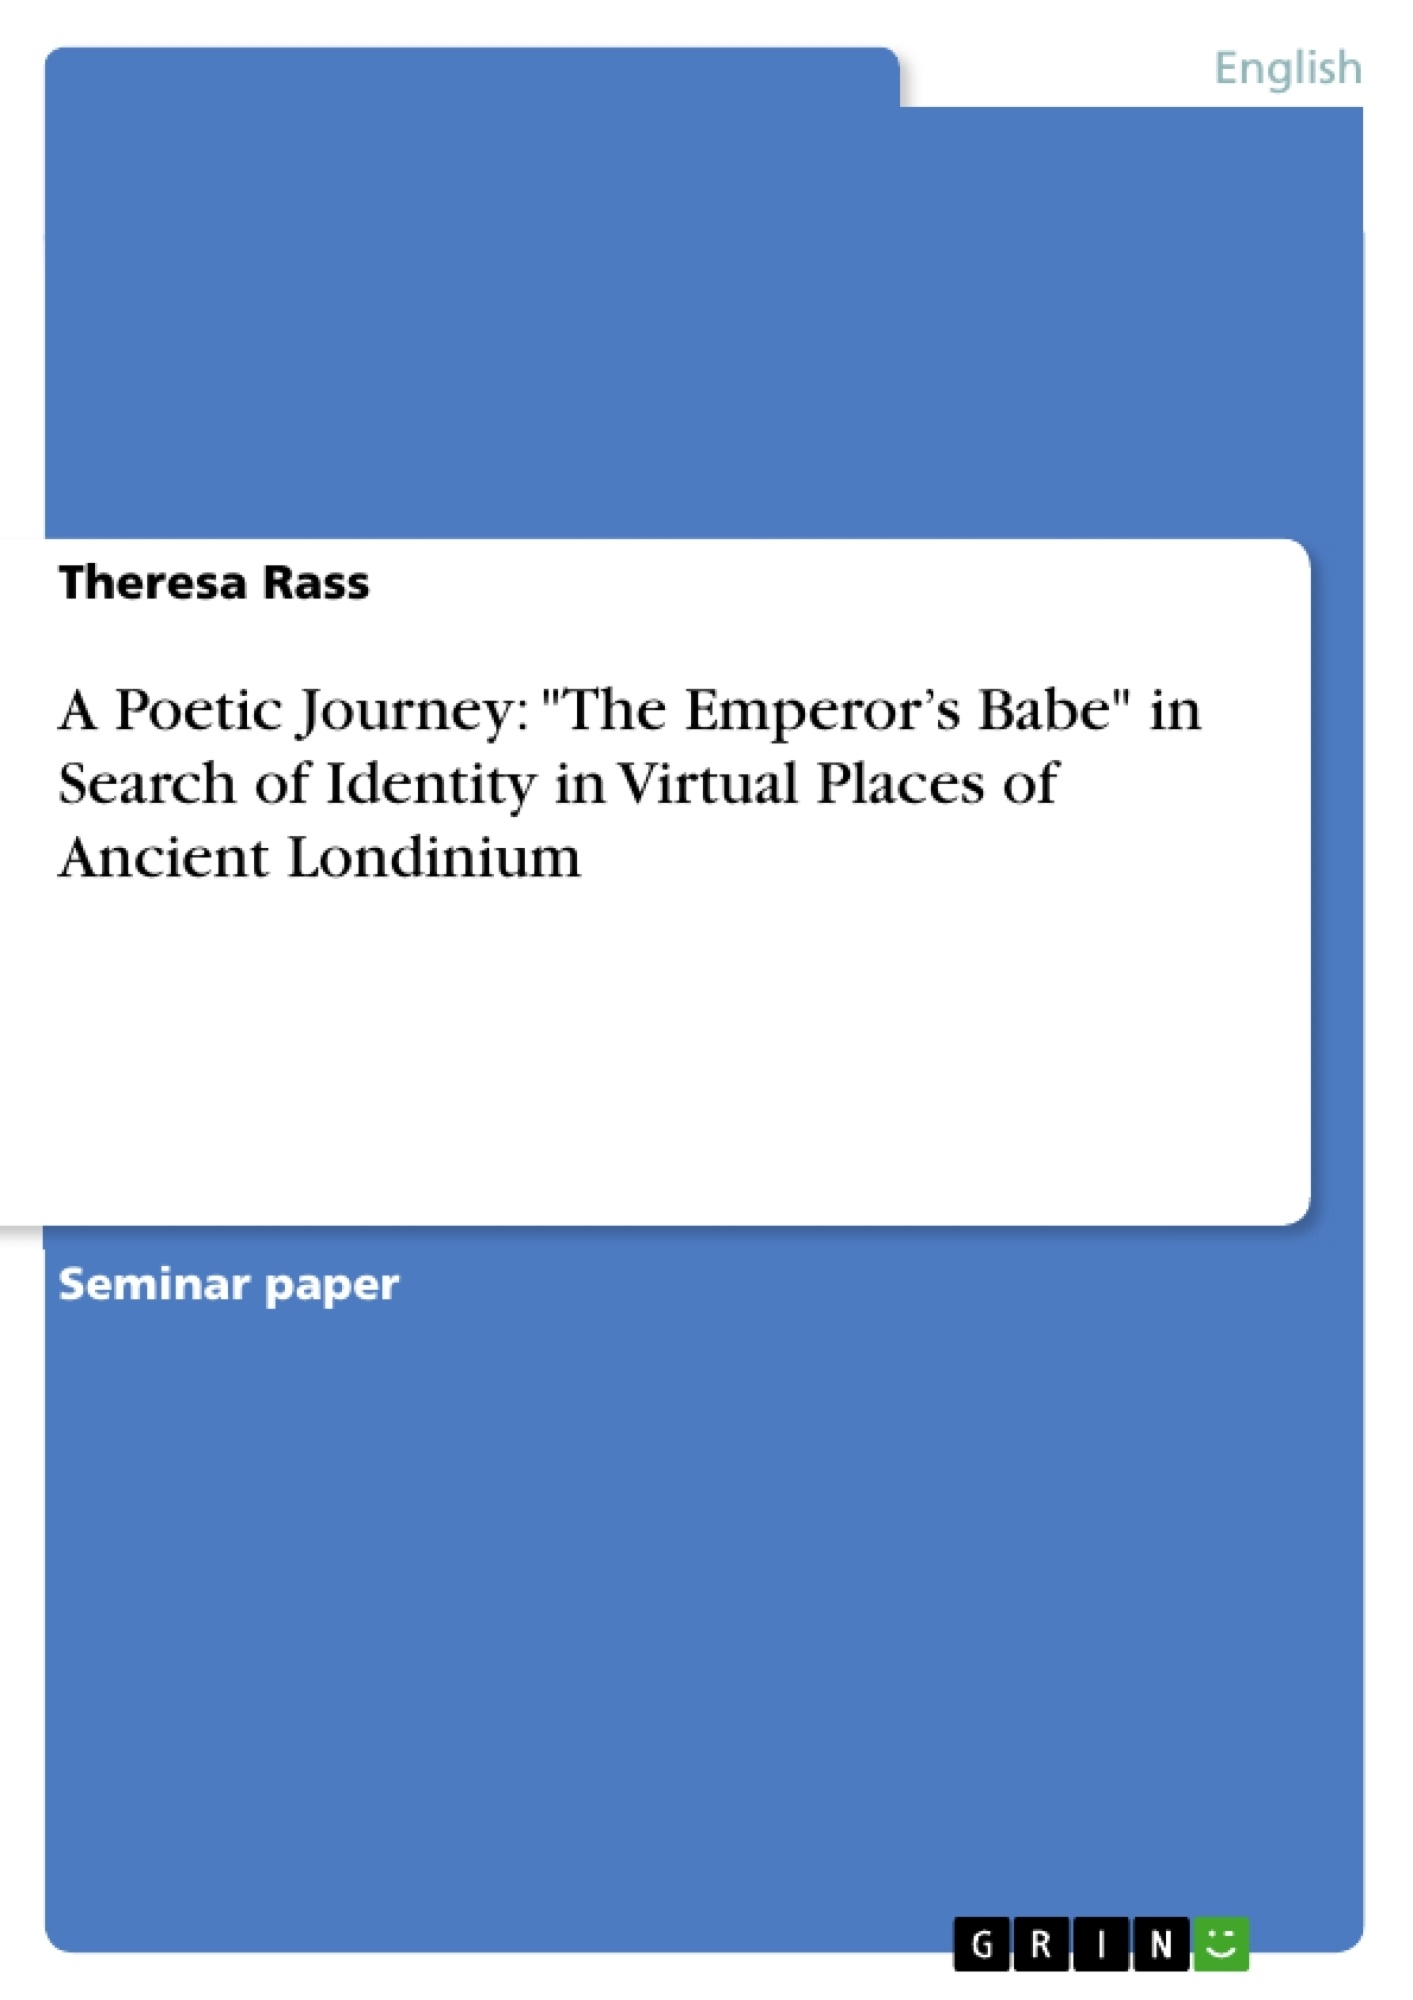 """Title: A Poetic Journey: """"The Emperor's Babe"""" in Search of Identity in Virtual Places of Ancient Londinium"""